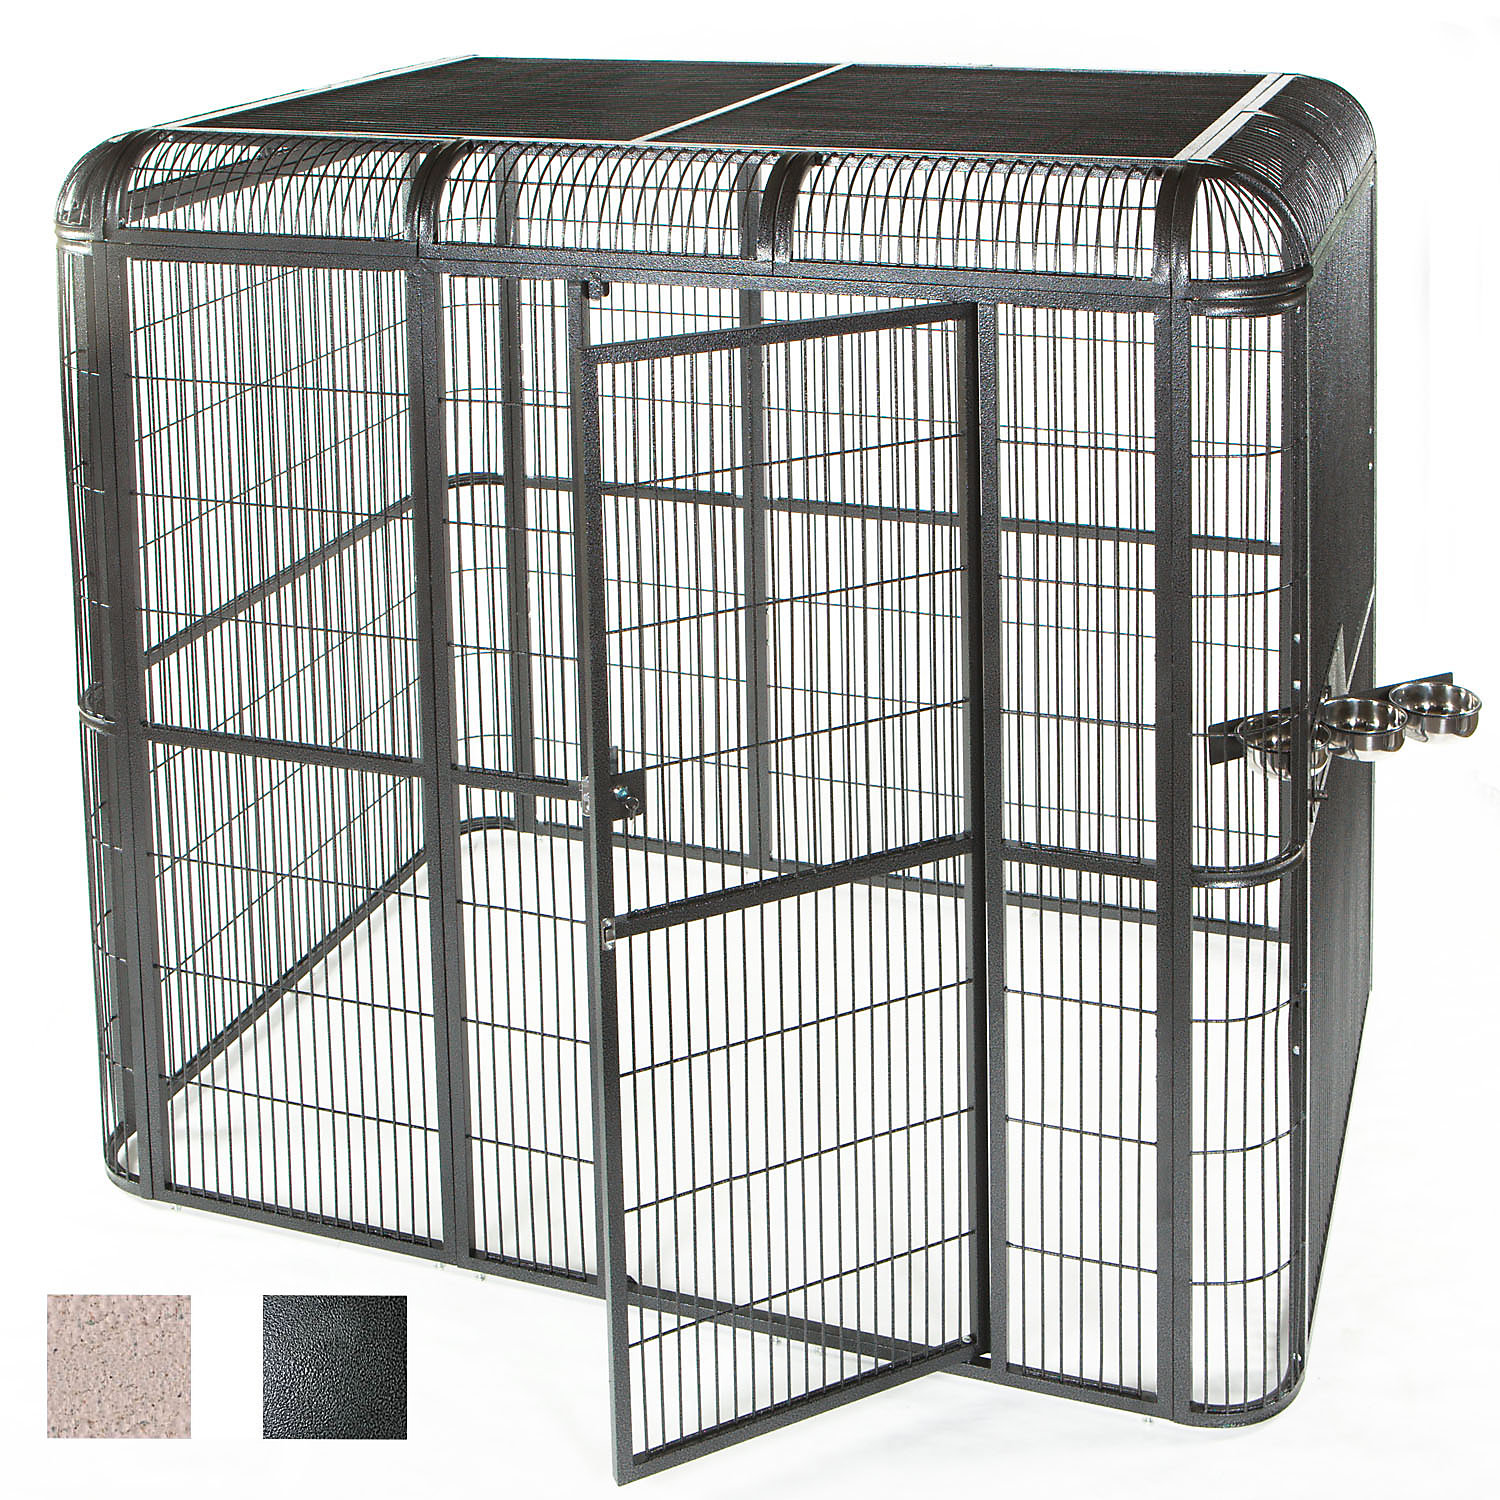 Ae Cage Company 110 X 62 Walk In Aviary In Black